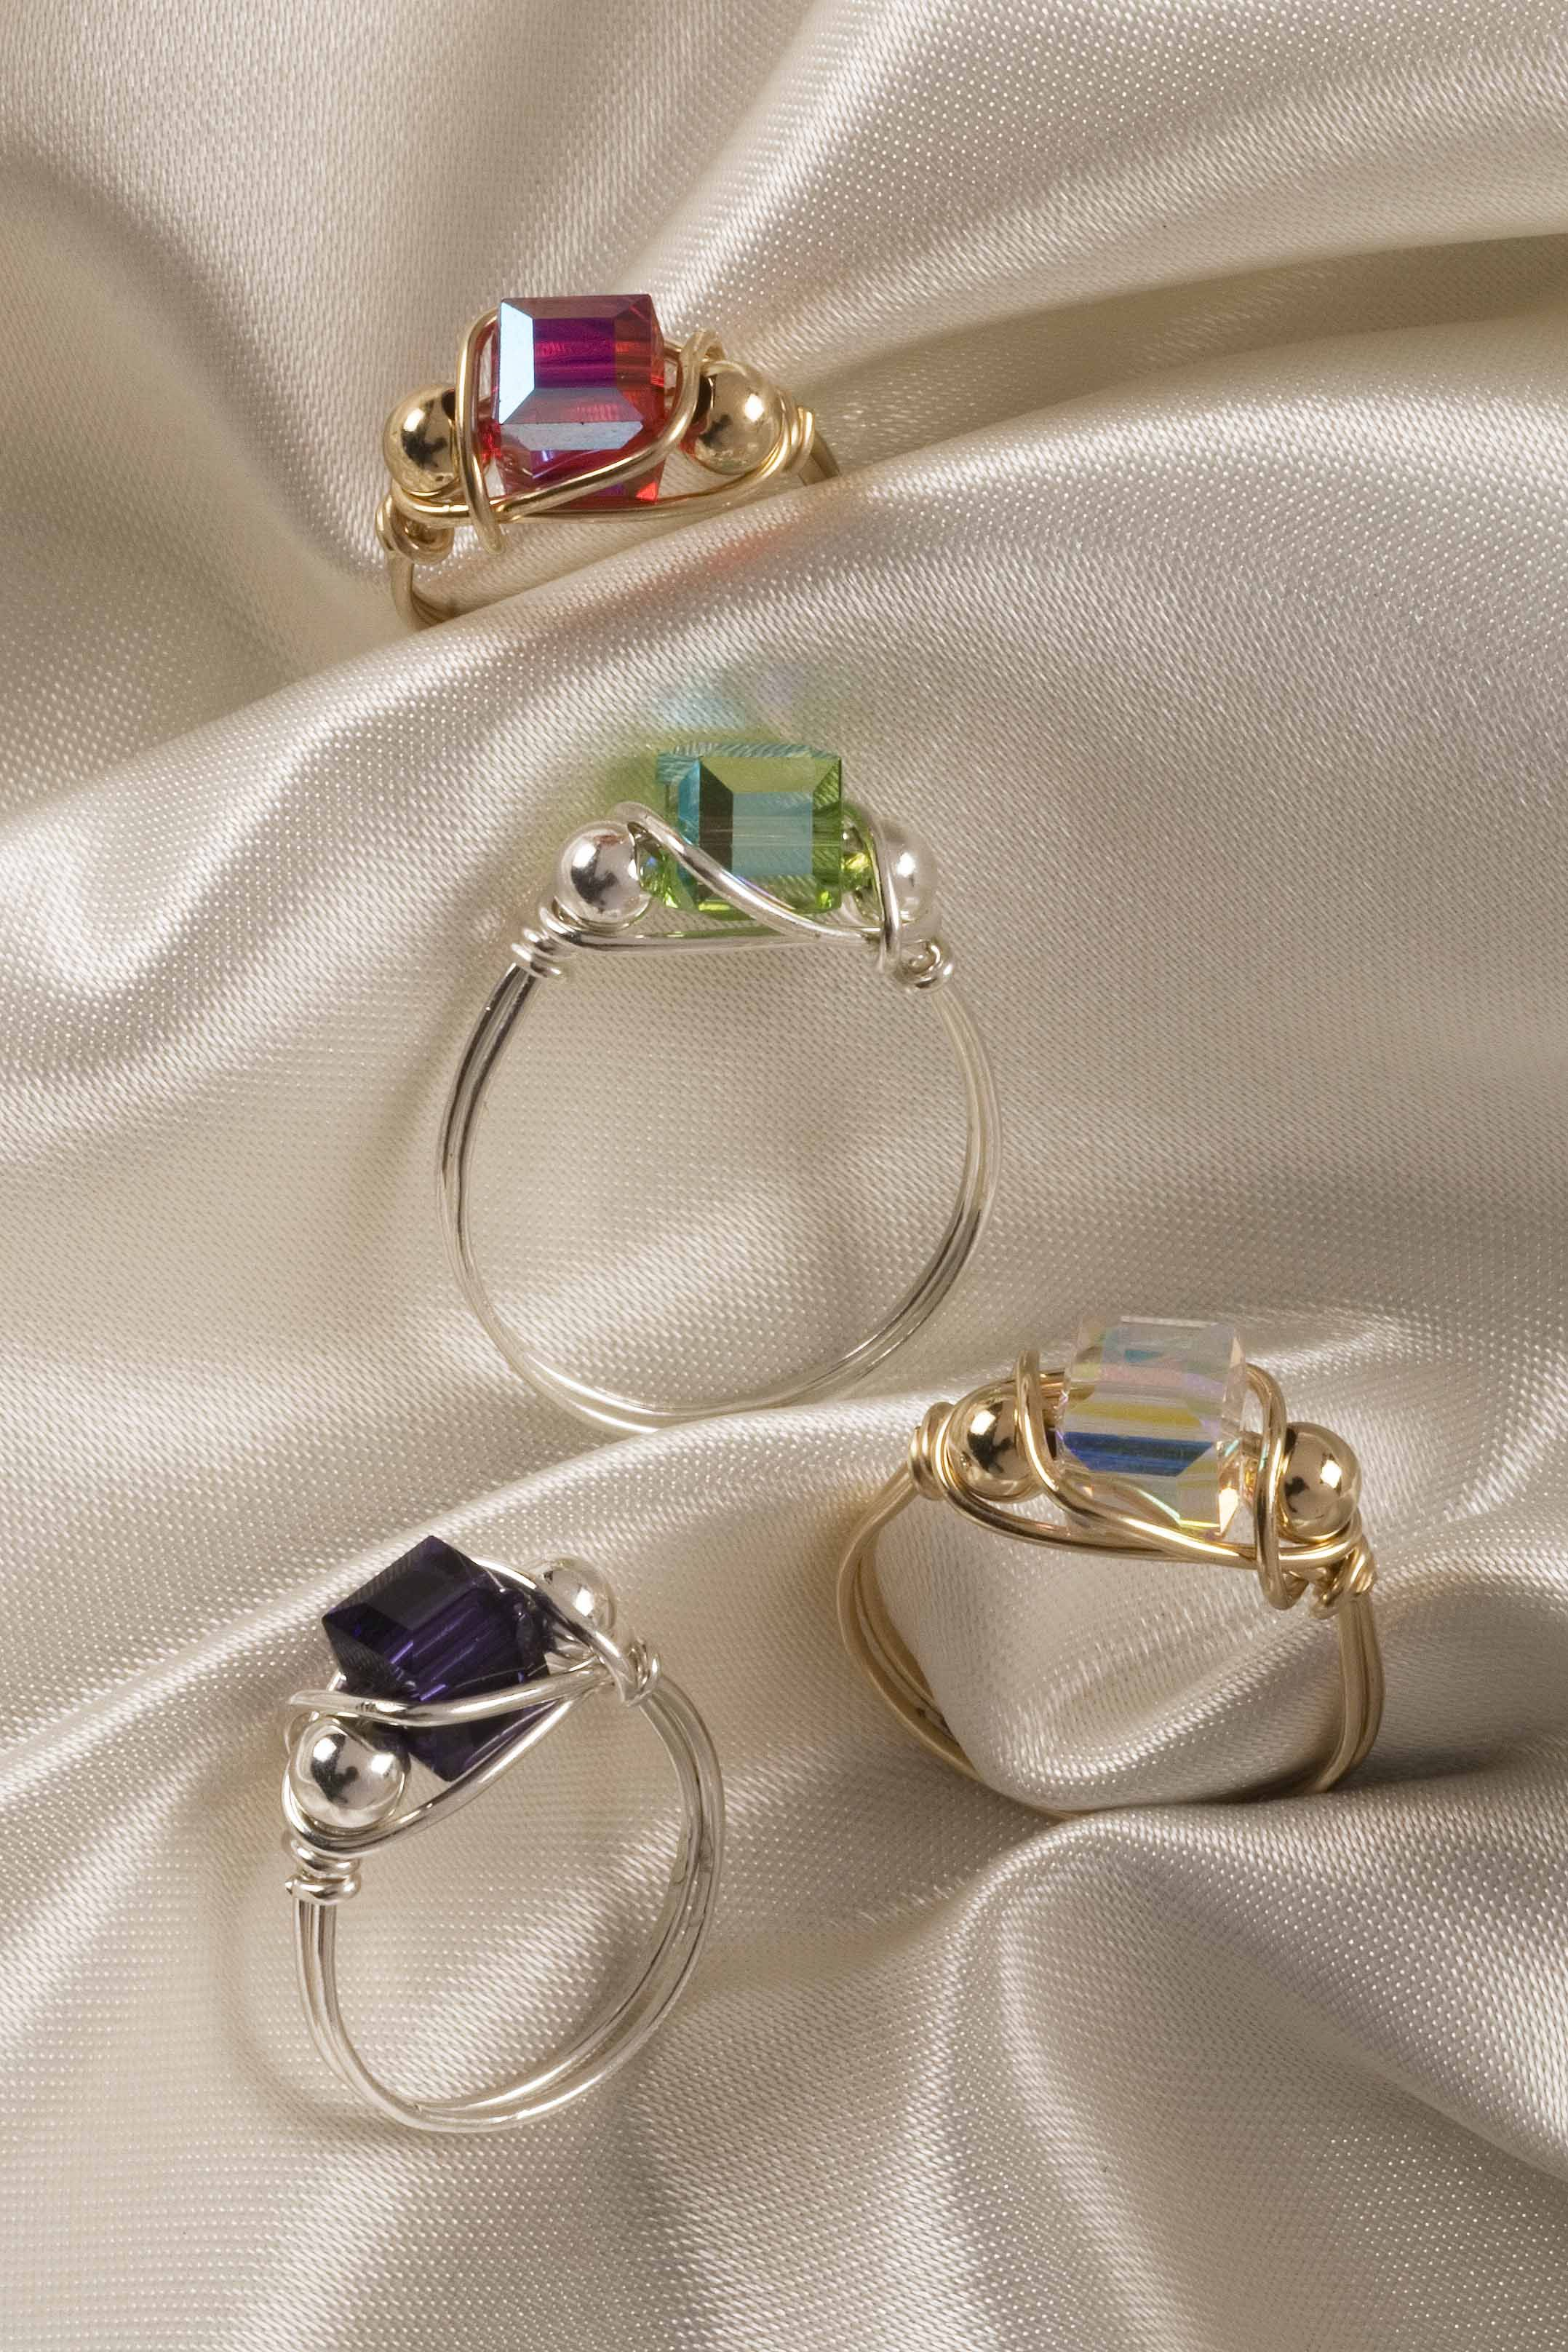 I actually have one of these rings from this lady... maybe someday ...